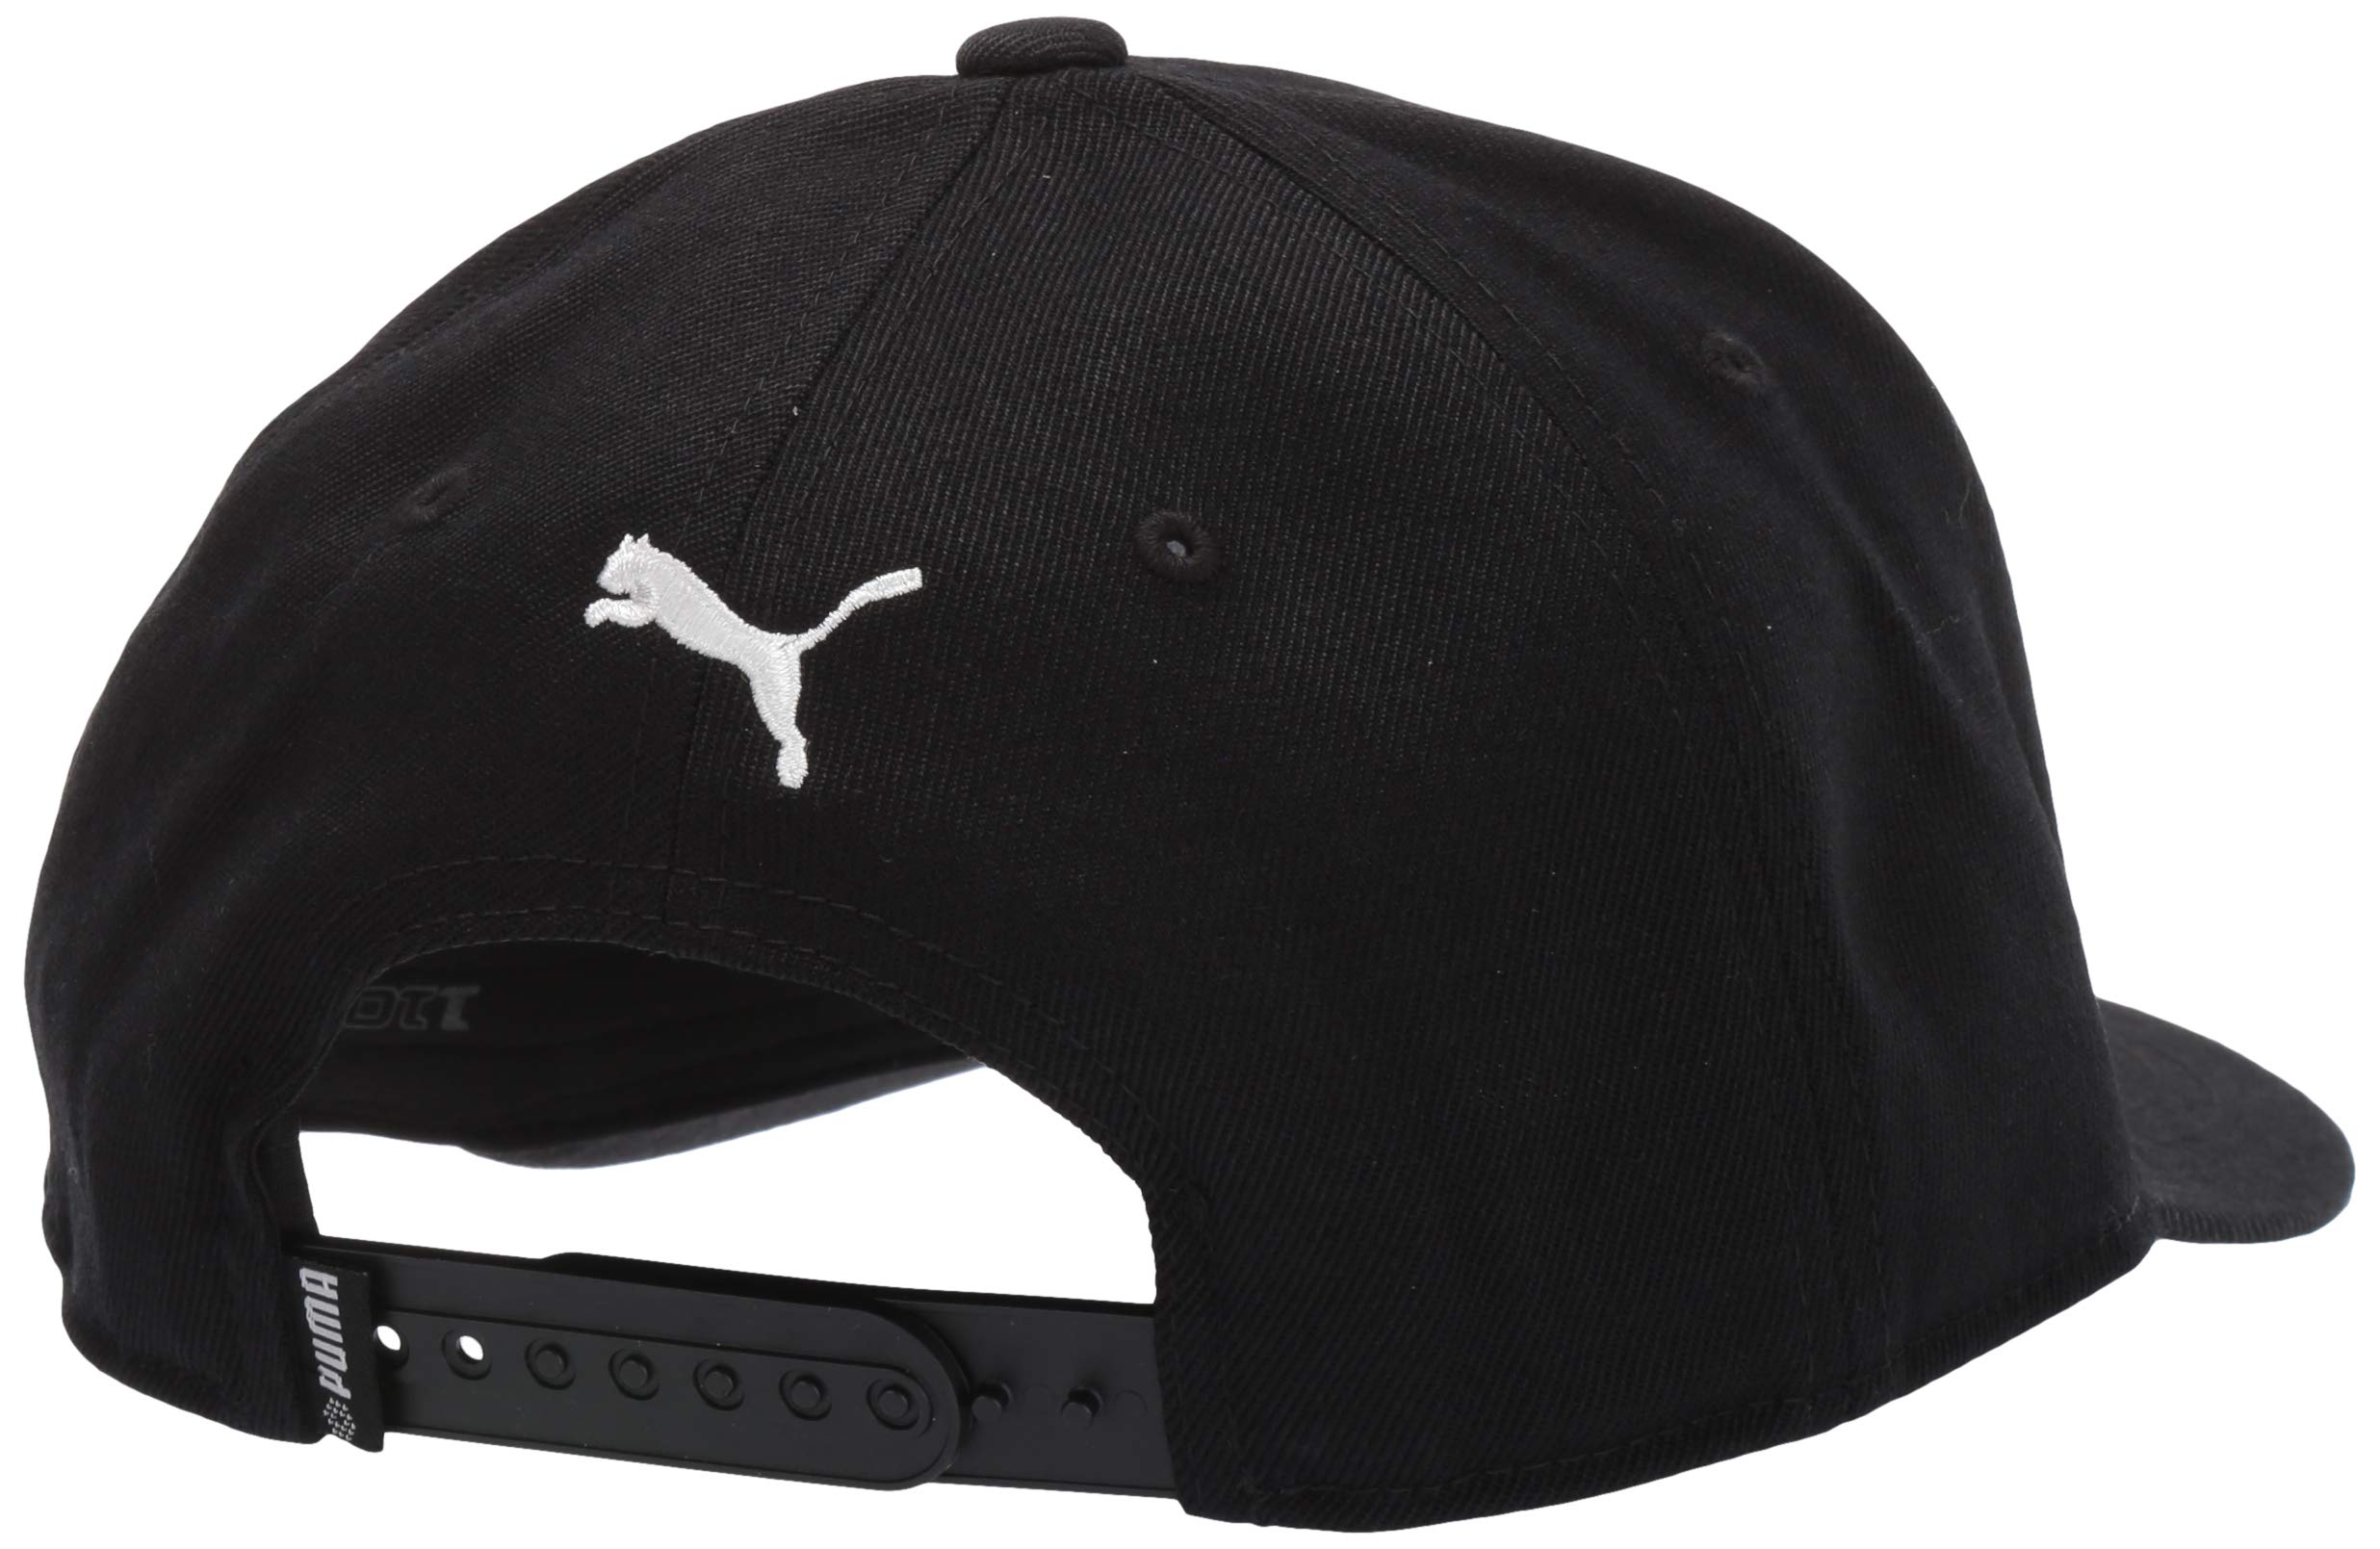 Puma Golf 2018 ''P'' Snapback Hat (Puma Black, One Size) by PUMA (Image #2)